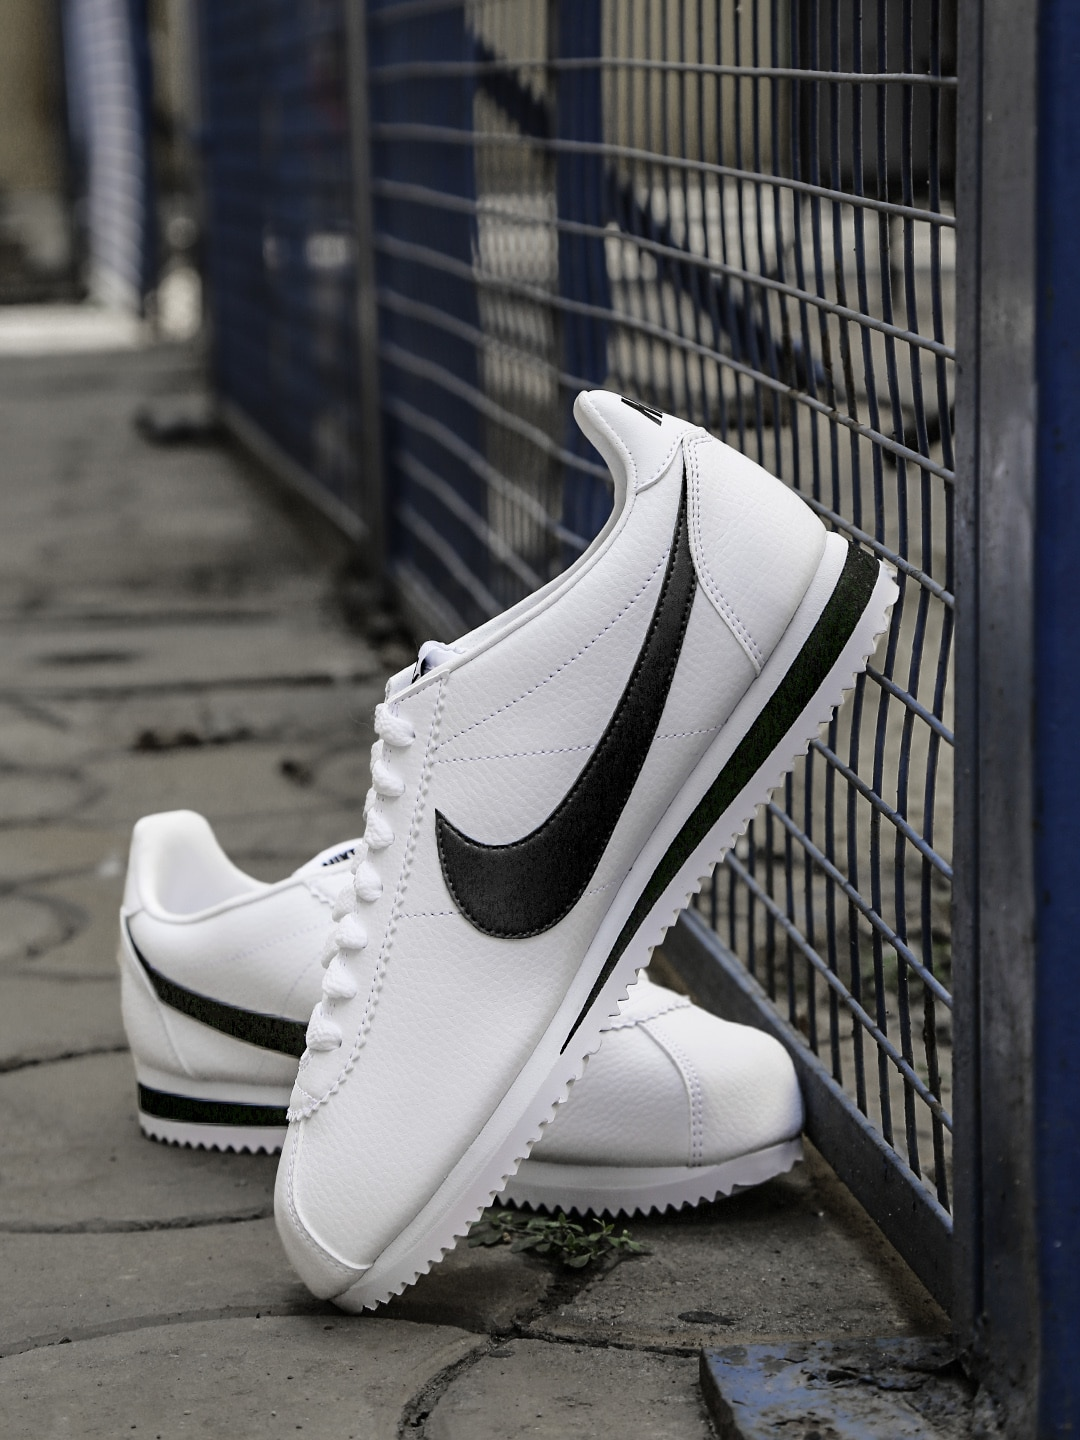 best sneakers a8176 49ece Nike Cortez Casual Shoes - Buy Nike Cortez Casual Shoes online in India